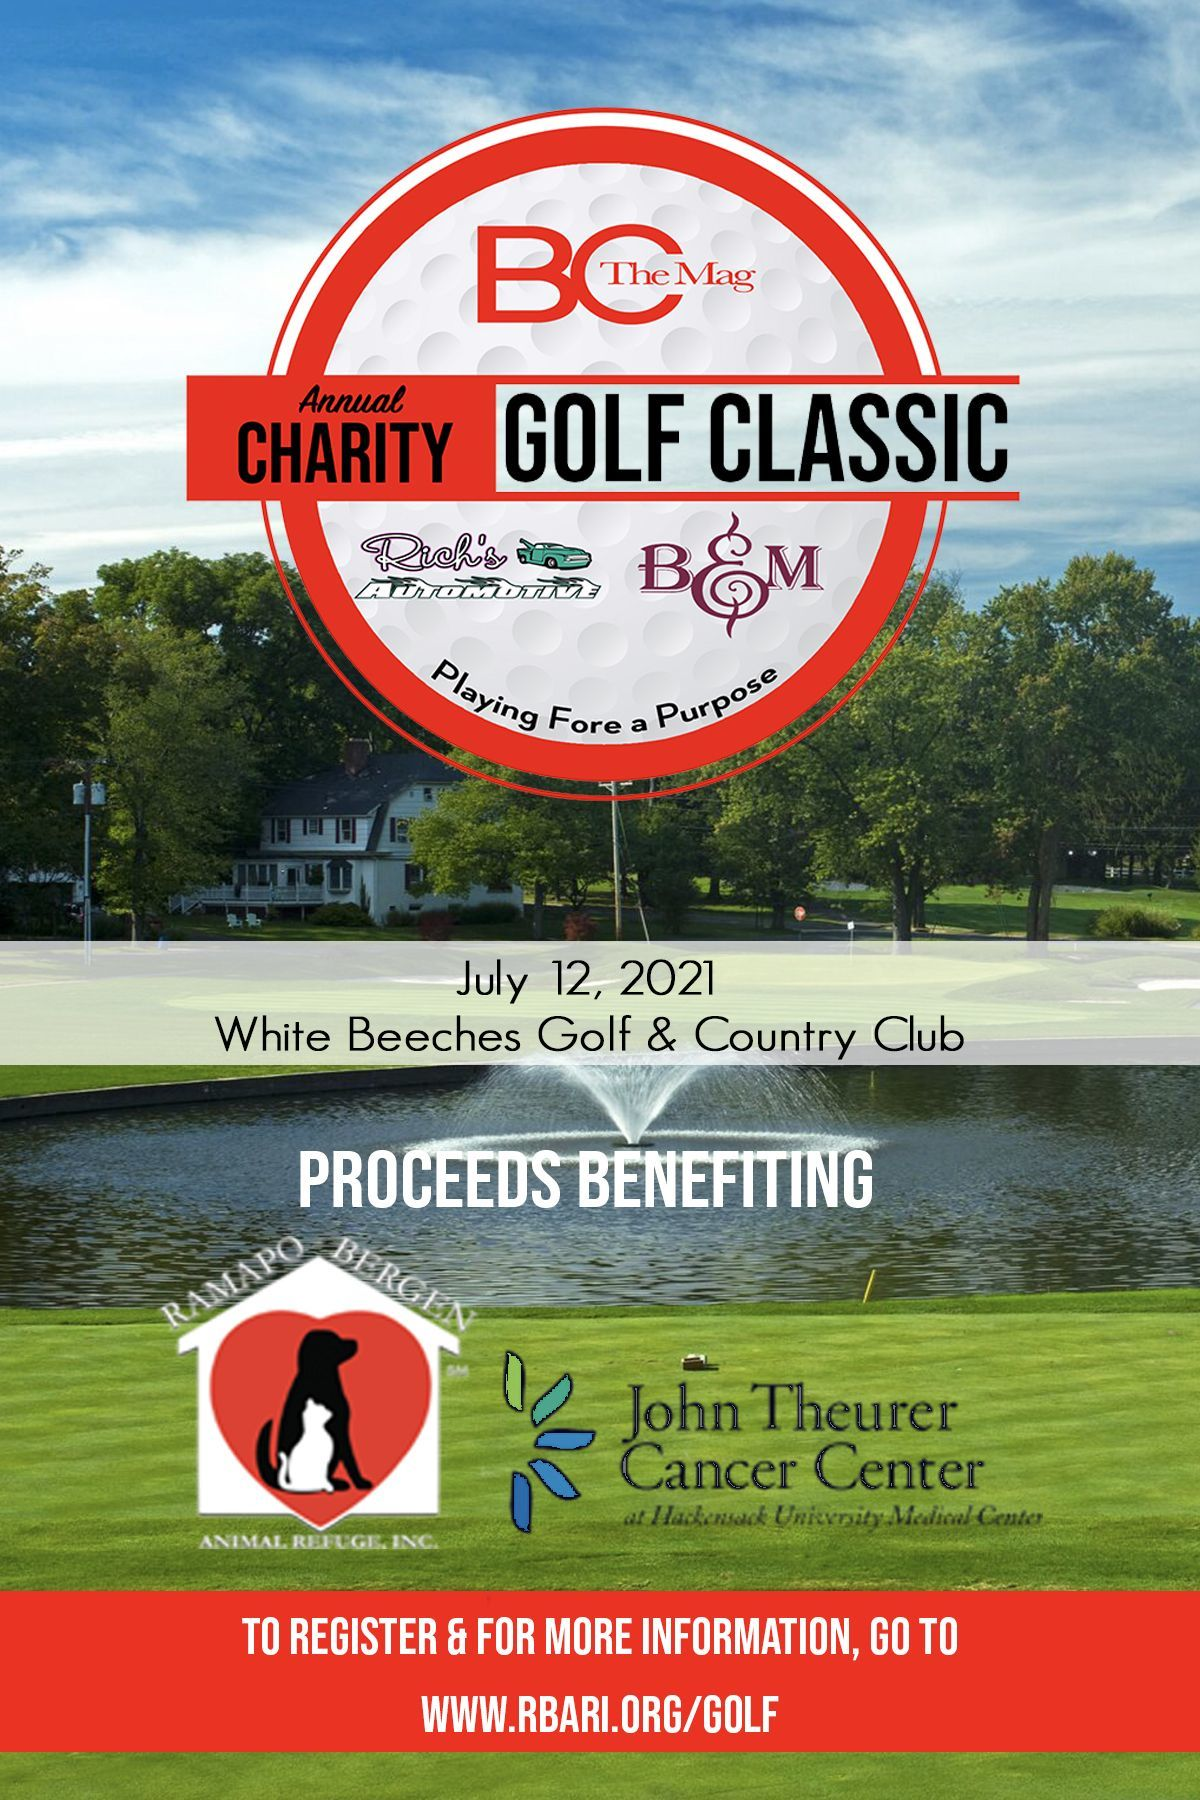 BC The Mag's Annual Charity Golf Classic